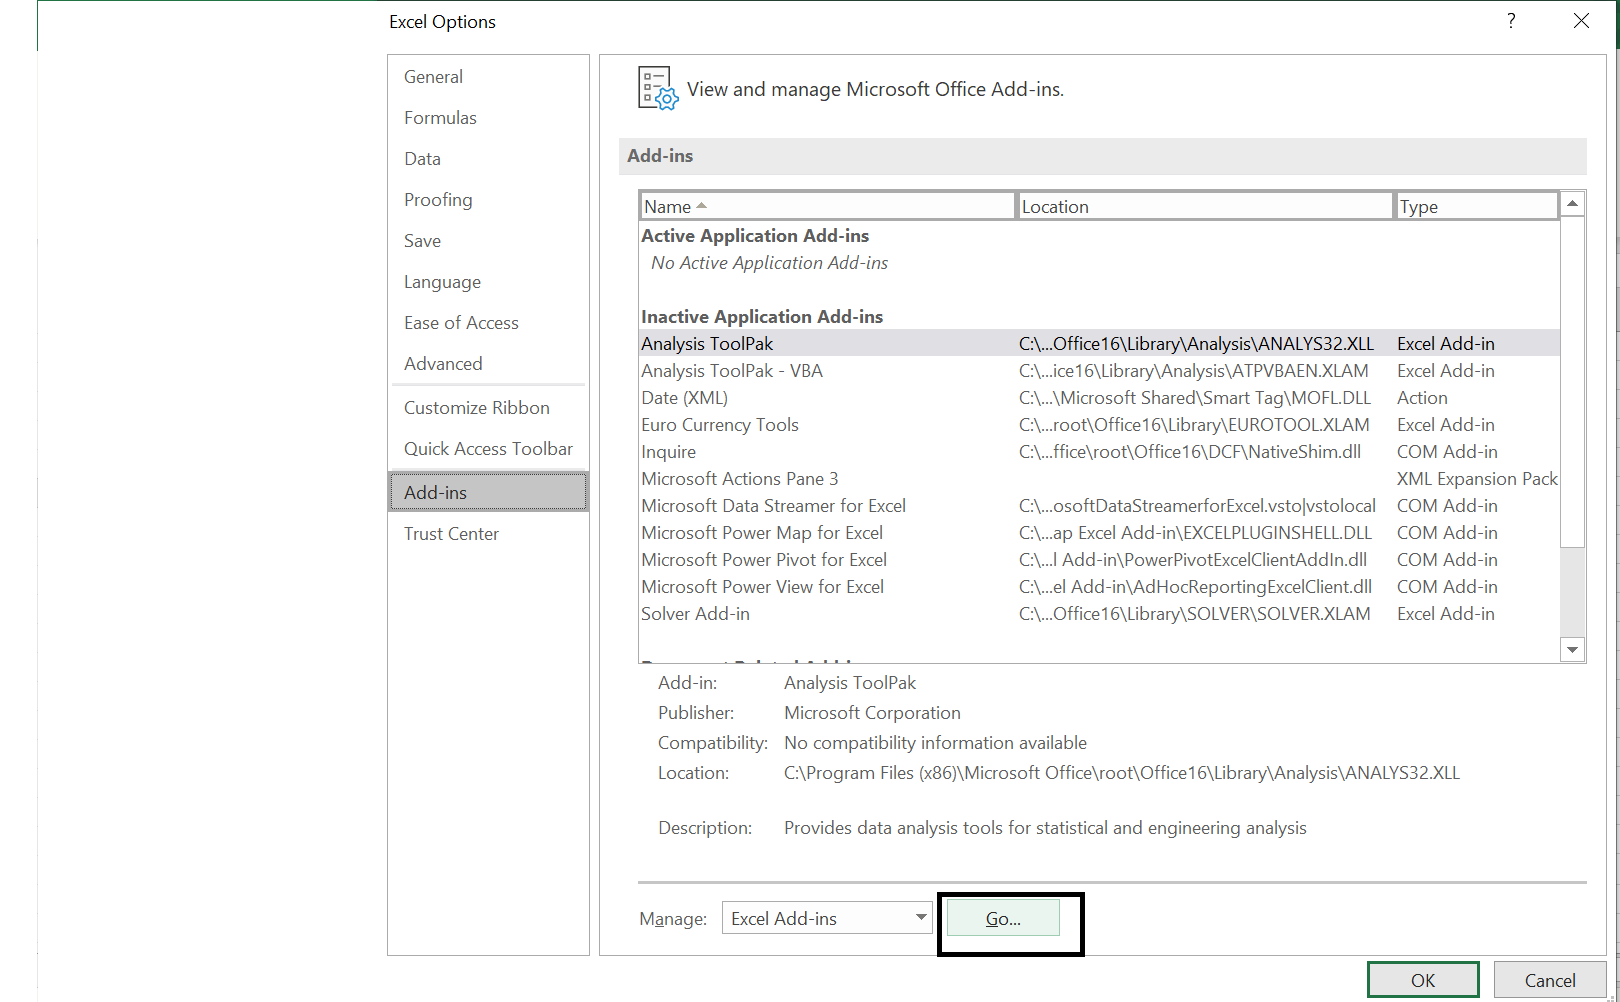 Analysis toolpak is marked inactive